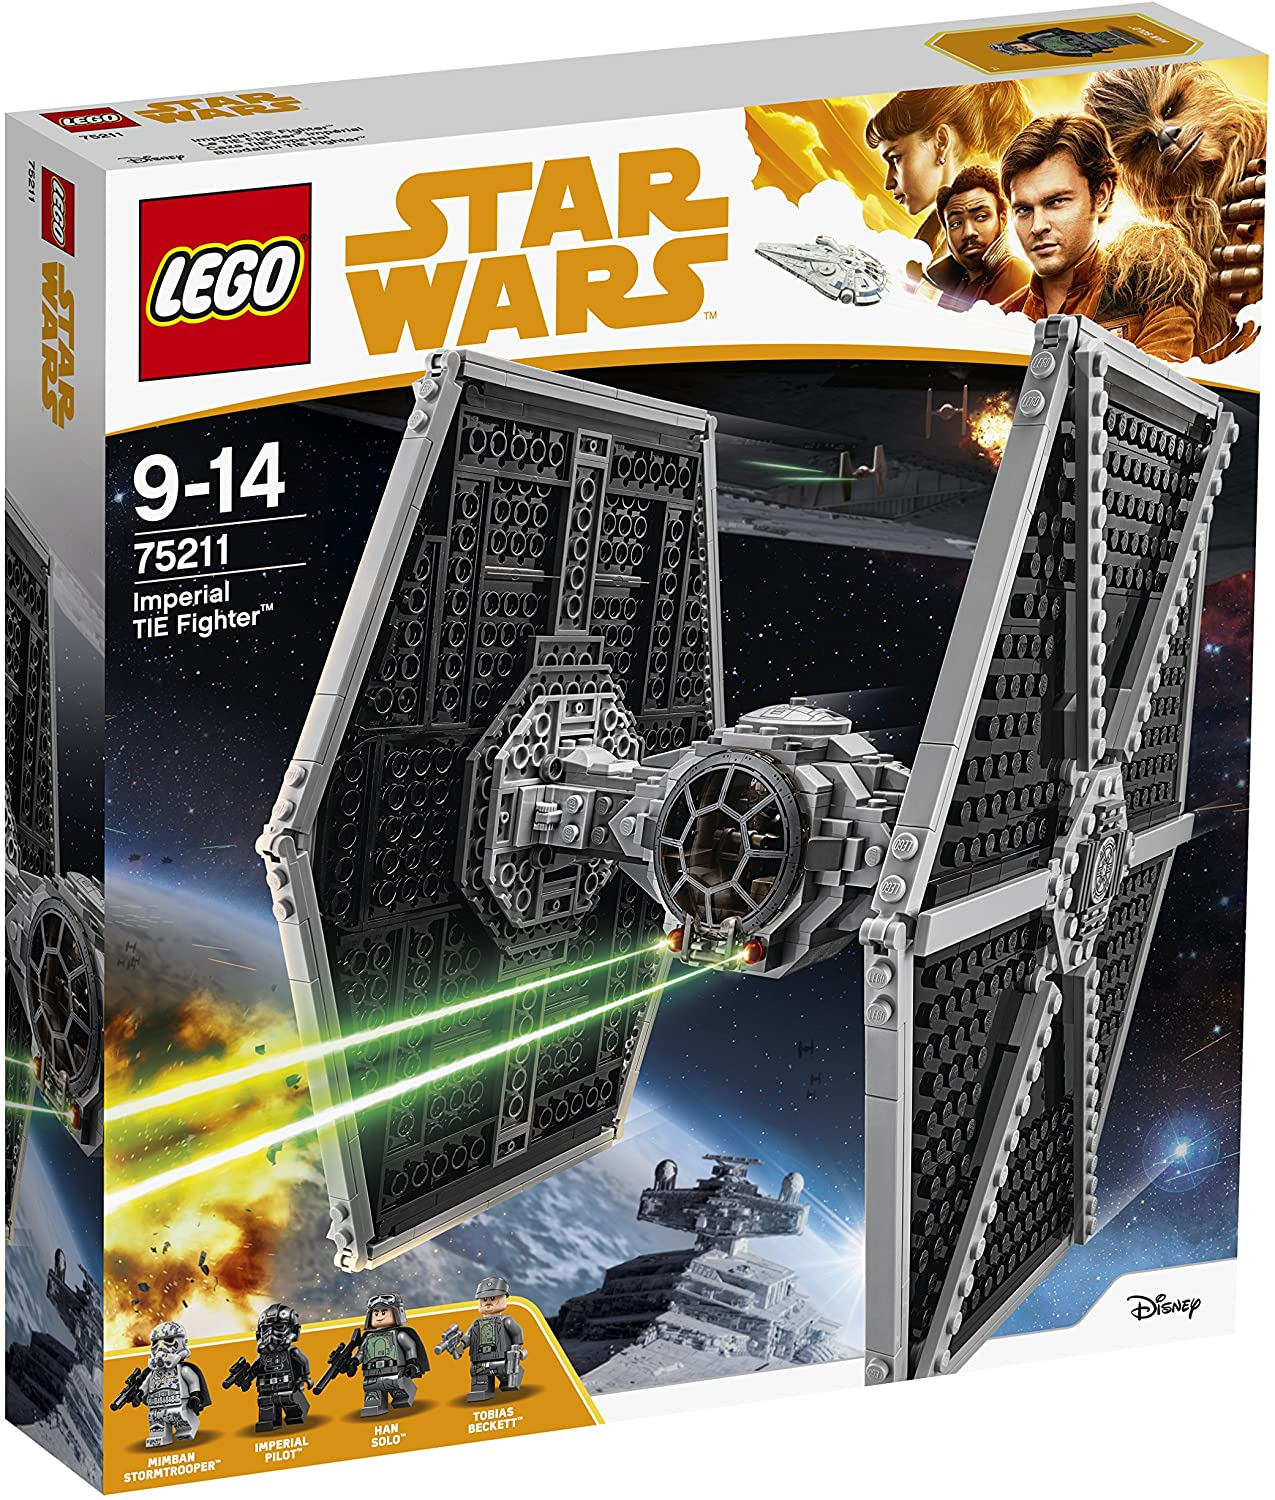 Modelo 75211 Imperial Fighter